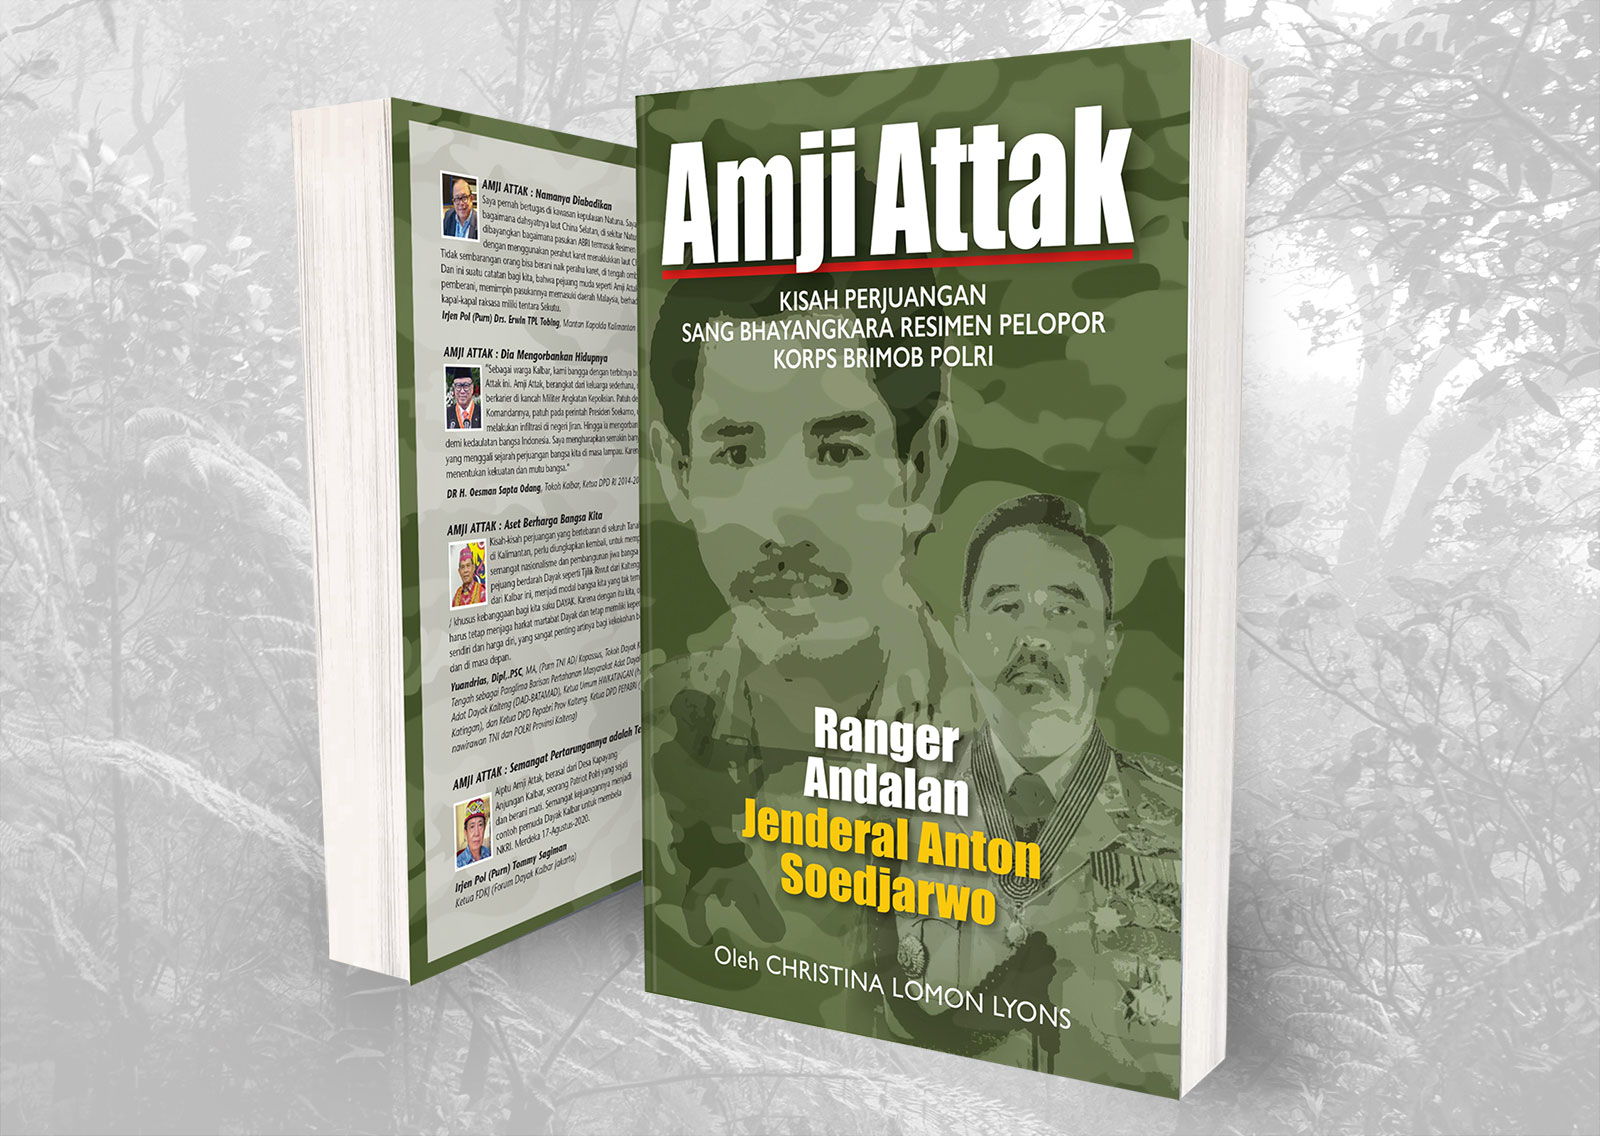 Amji Attak – Patriot Indonesia dari Kalimantan